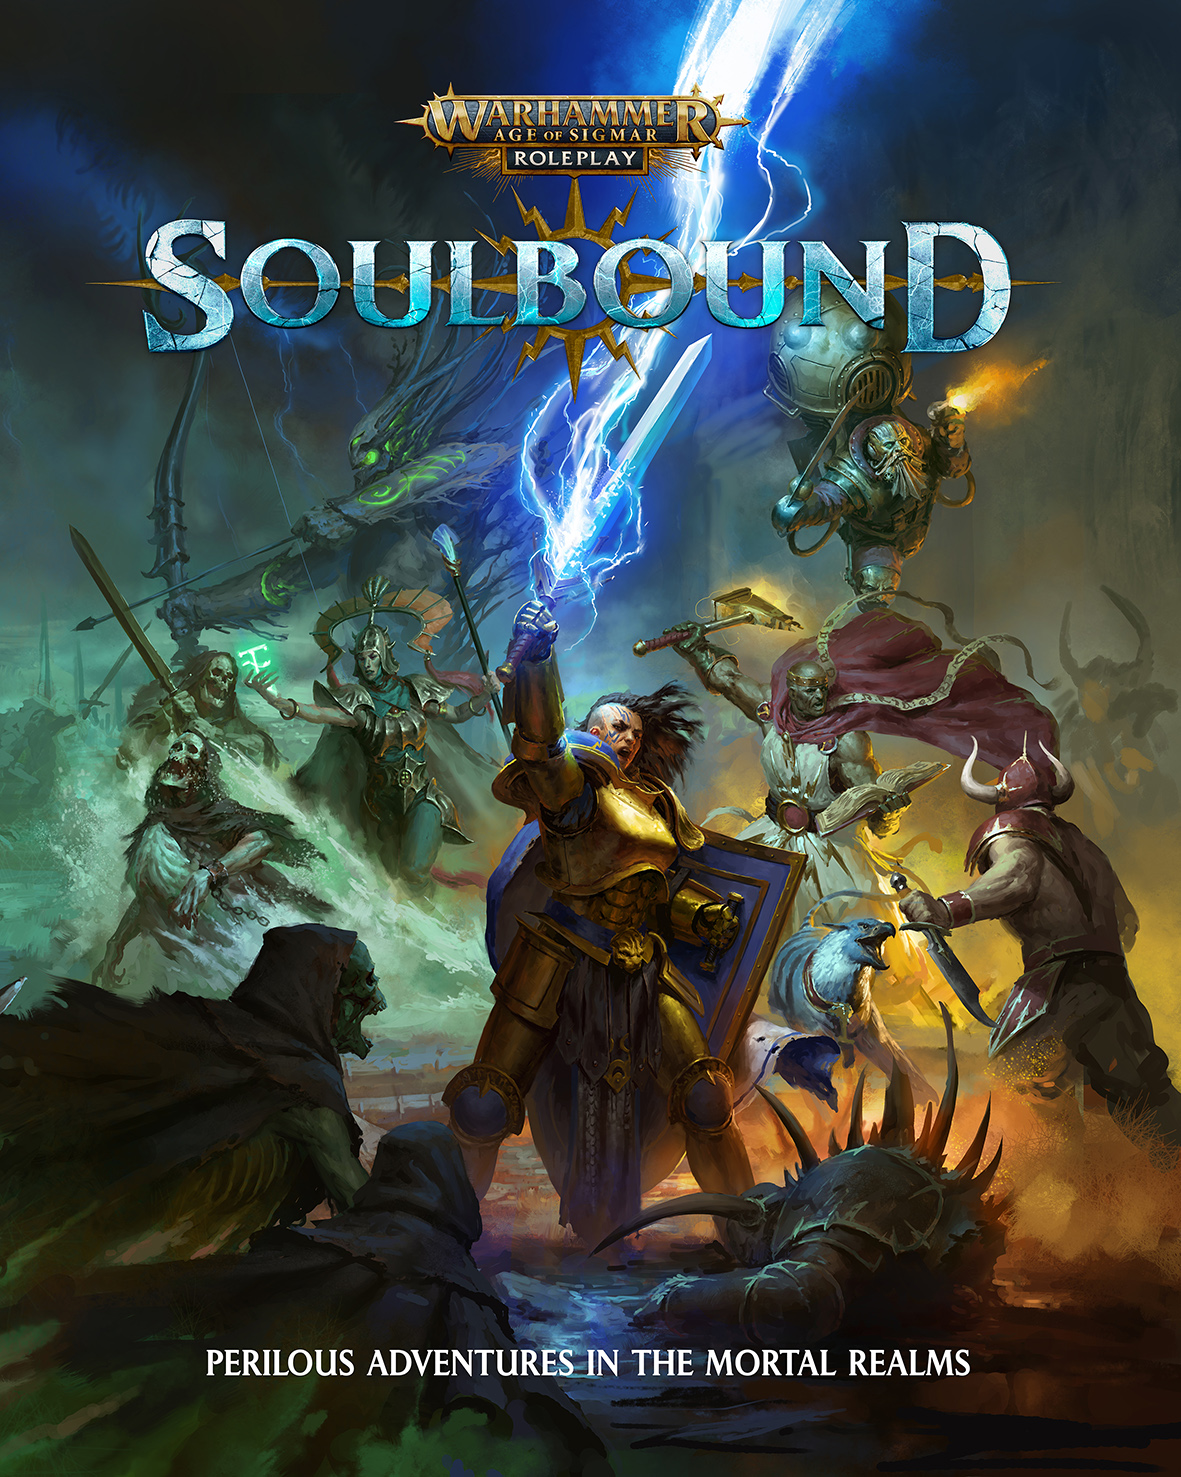 Soulbound - Warhammer: Age of Sigmar Roleplaying Game